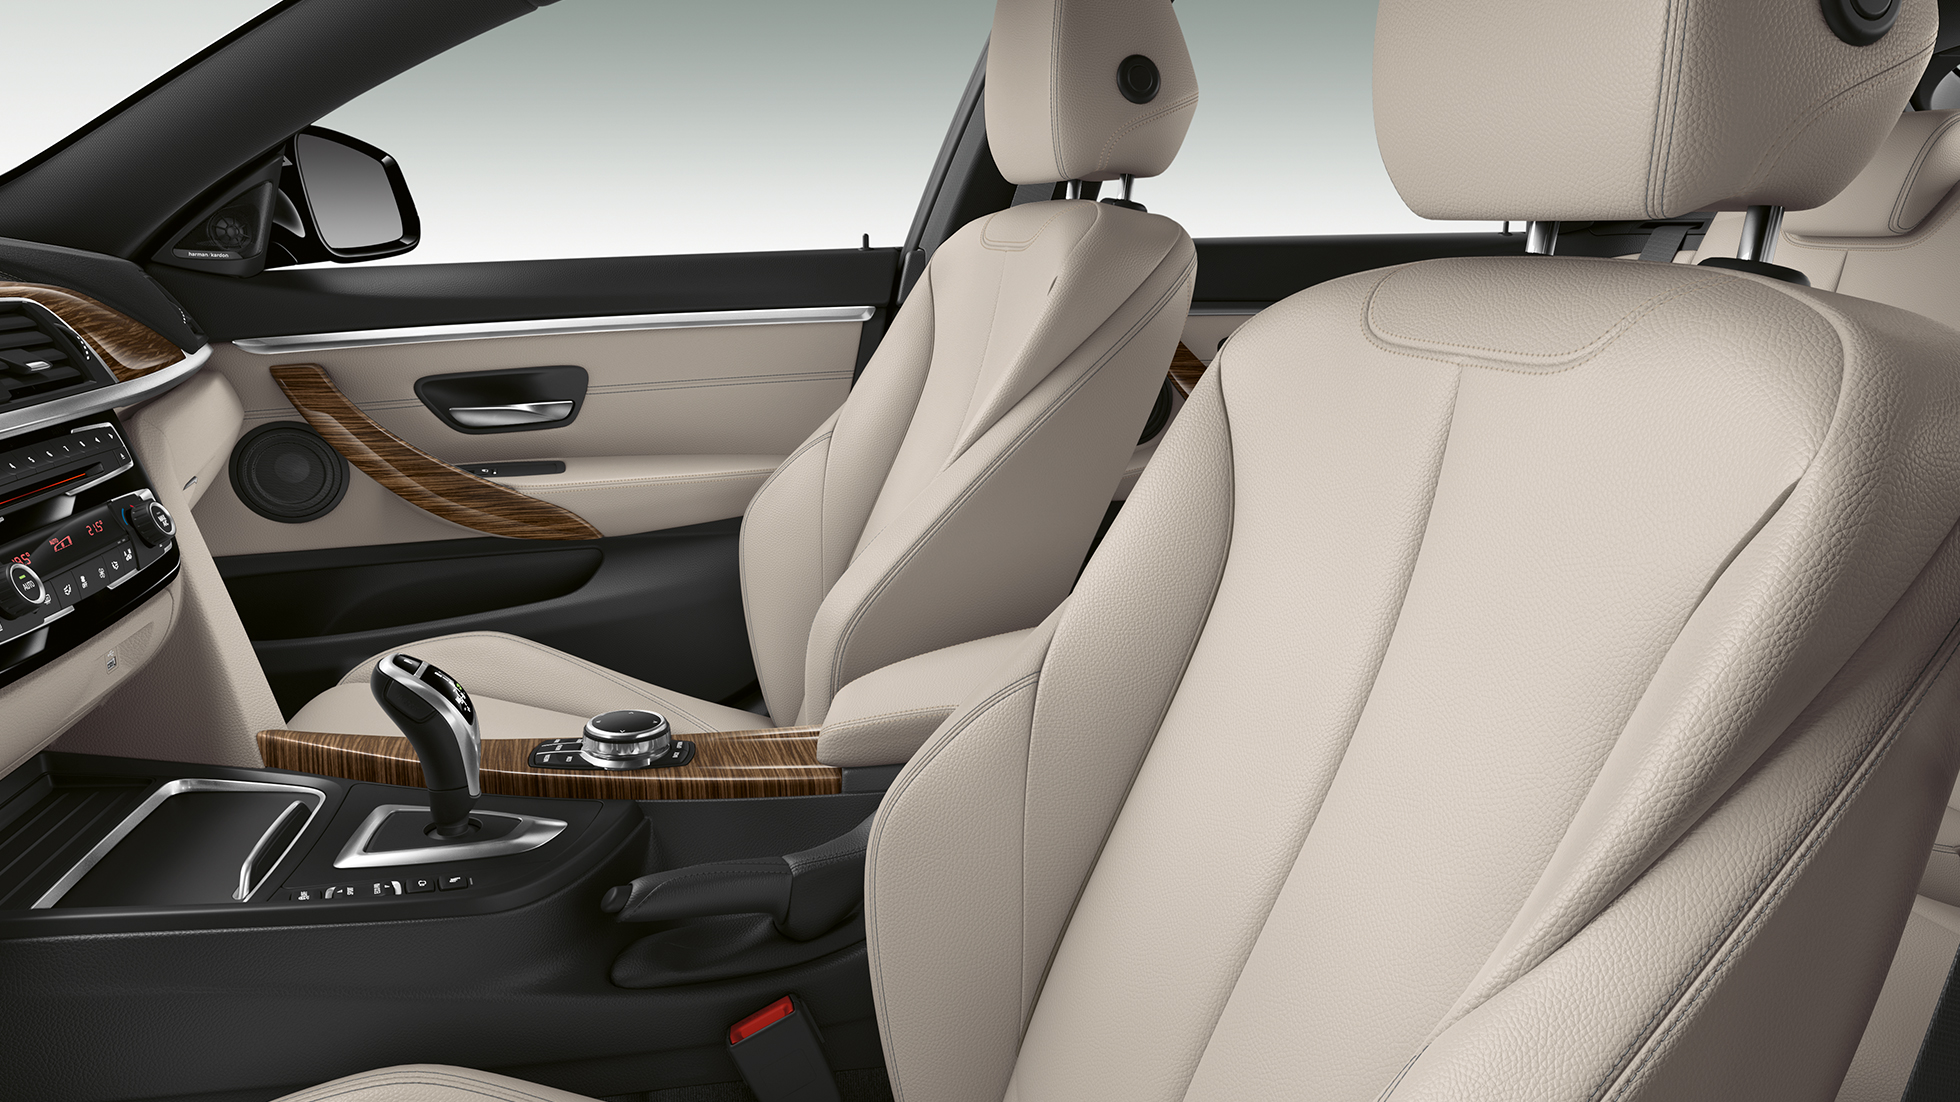 BMW 4er Gran Coupé, Modell Luxury Line Interieur